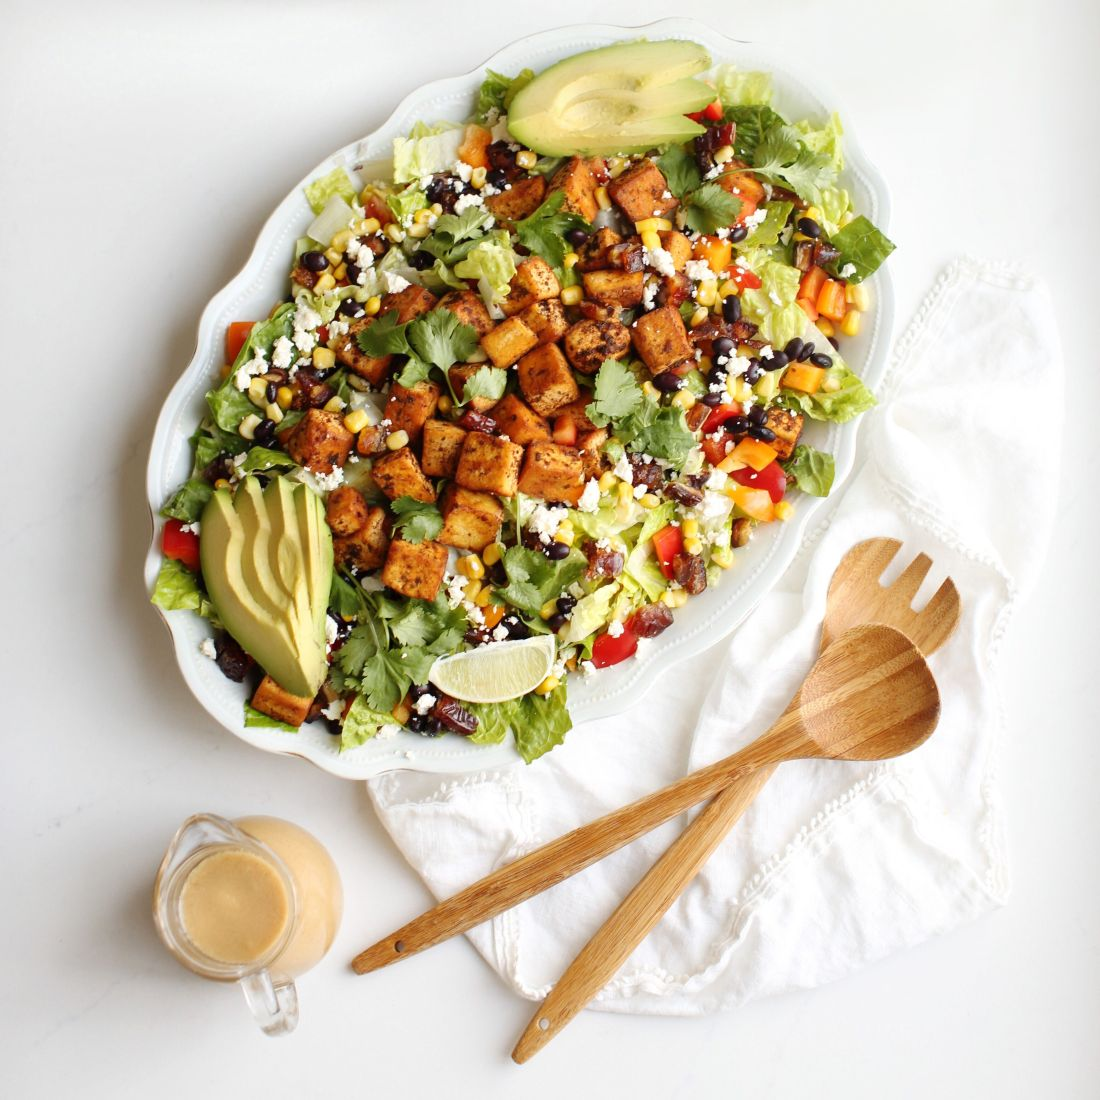 Cowgirl Salad - a Santa Fe inspired salad topped with either cajun tofu or chicken and filled with healthy ingredients topped with a perfect peanut lime salad dressing